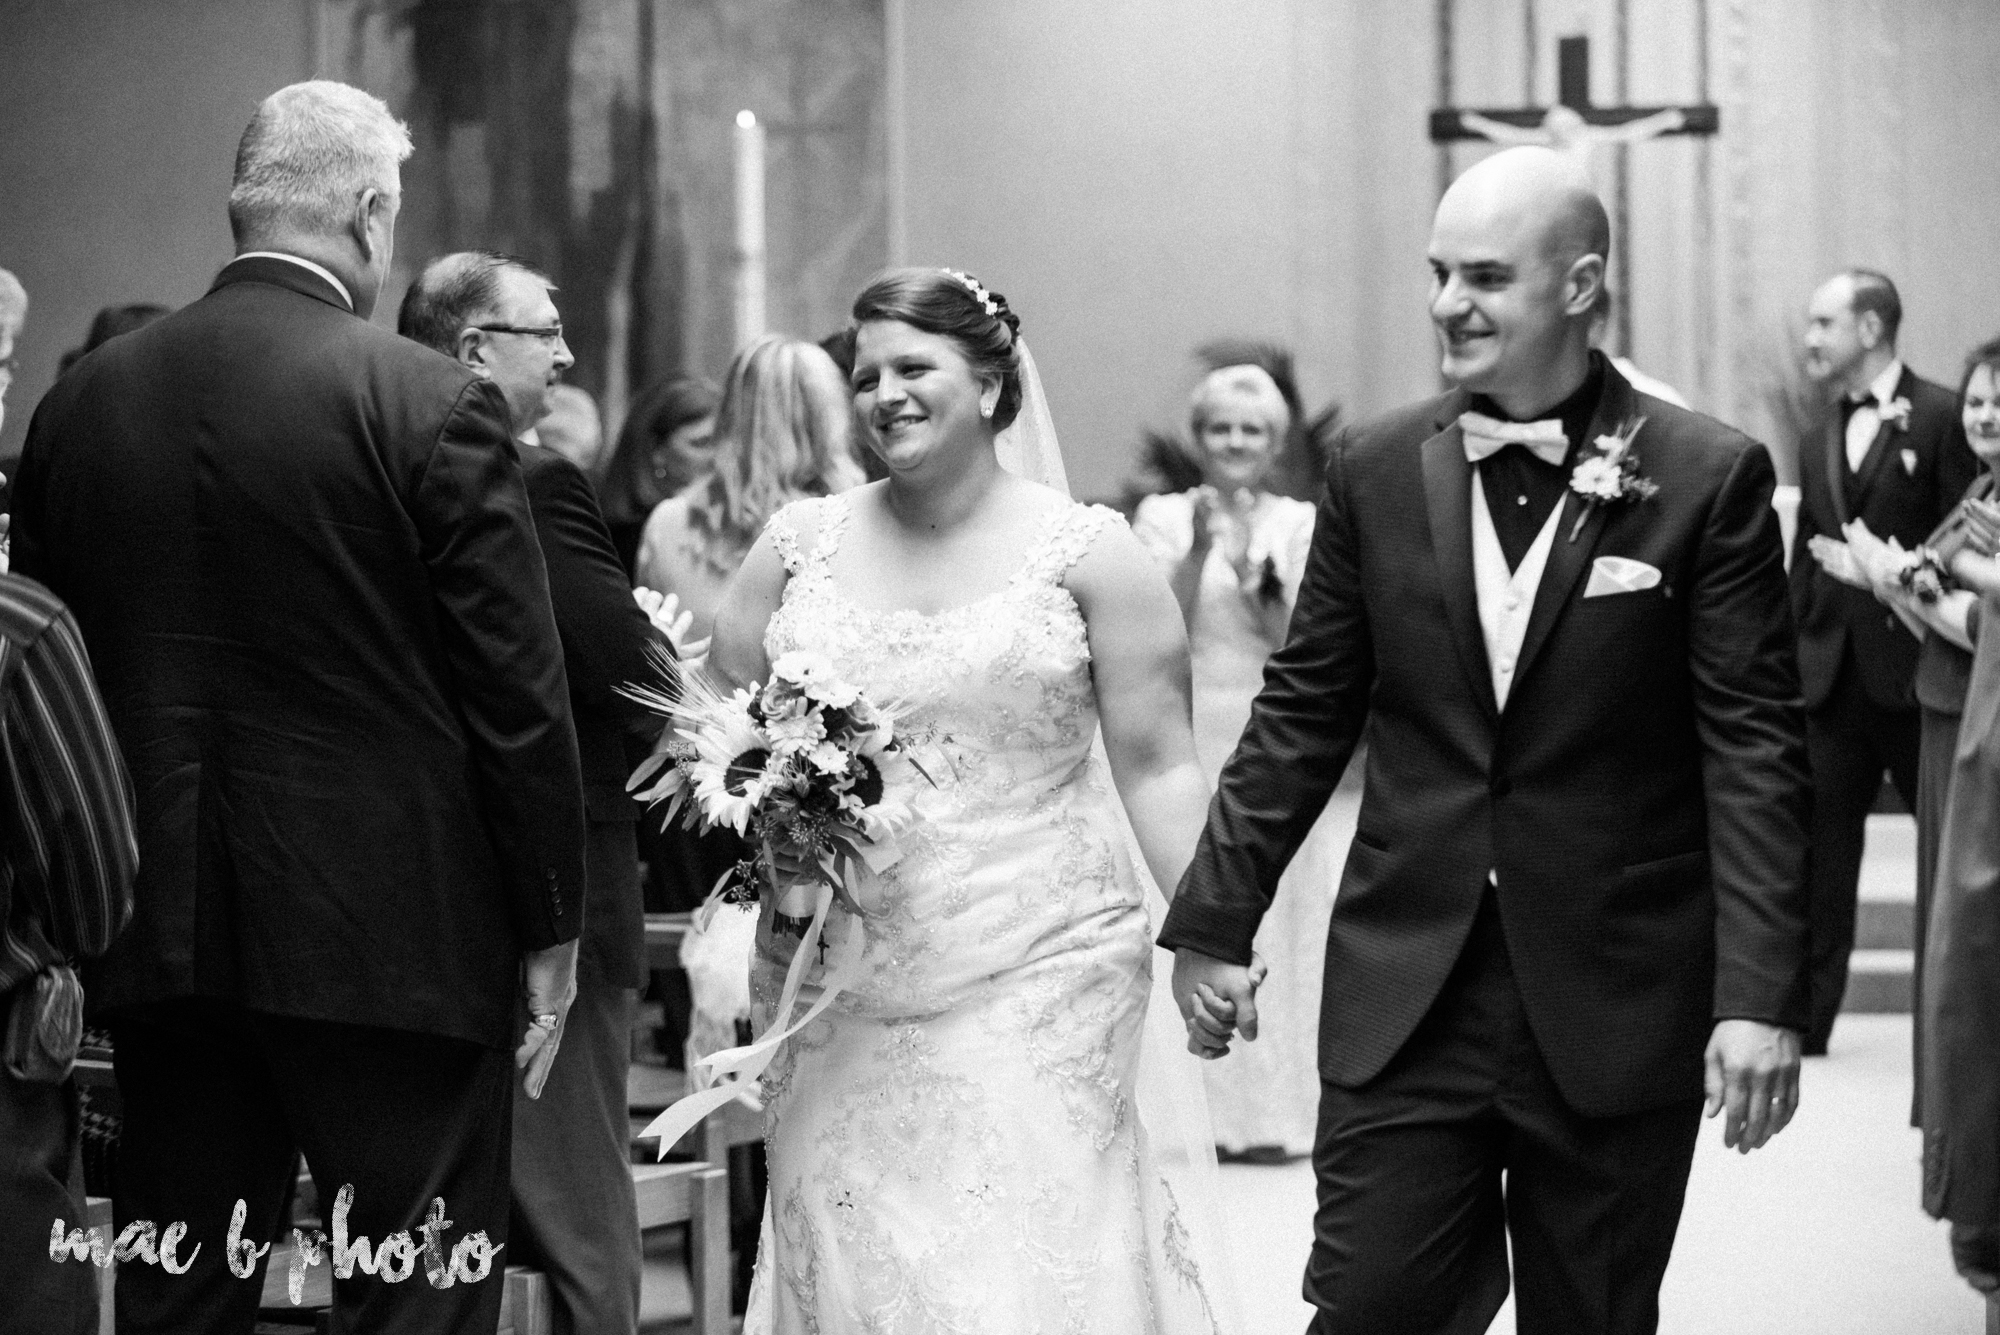 kaylynn & matt's fall zoo wedding at the cleveland metroparks zoo in cleveland ohio photographed by mae b photo-11.jpg